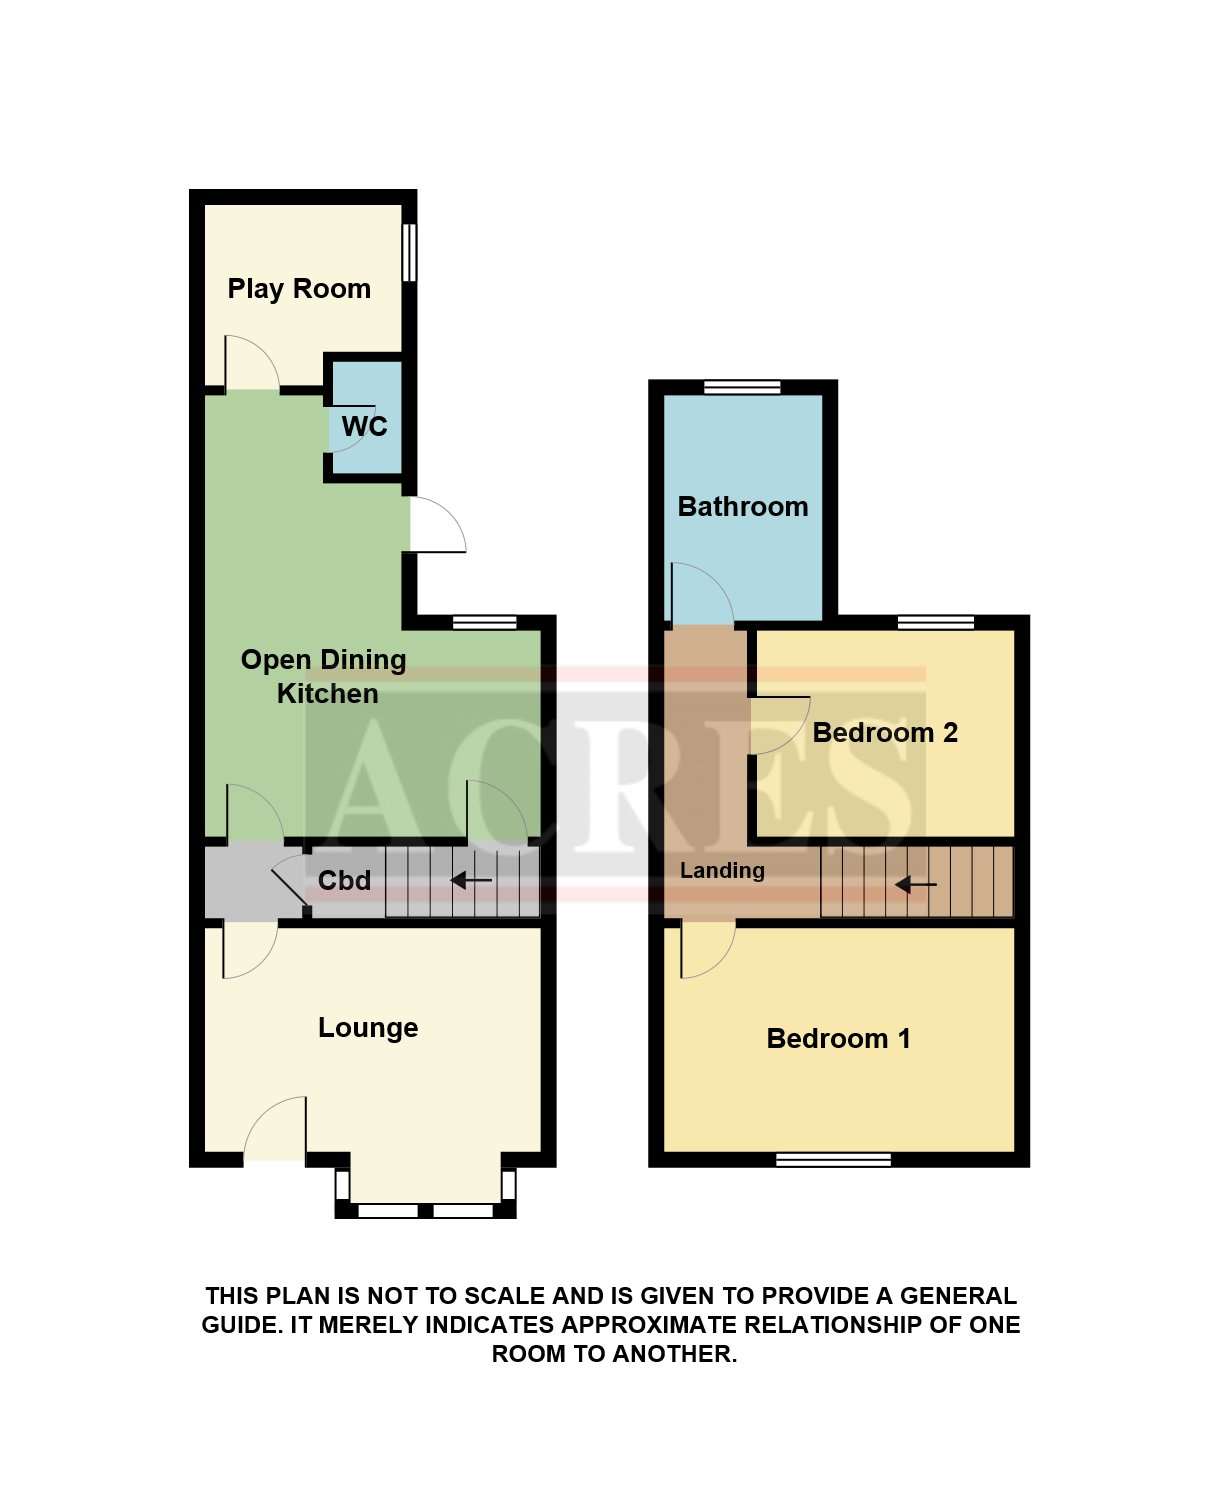 Property In Coles Lane, Sutton Coldfield, B72 1NH